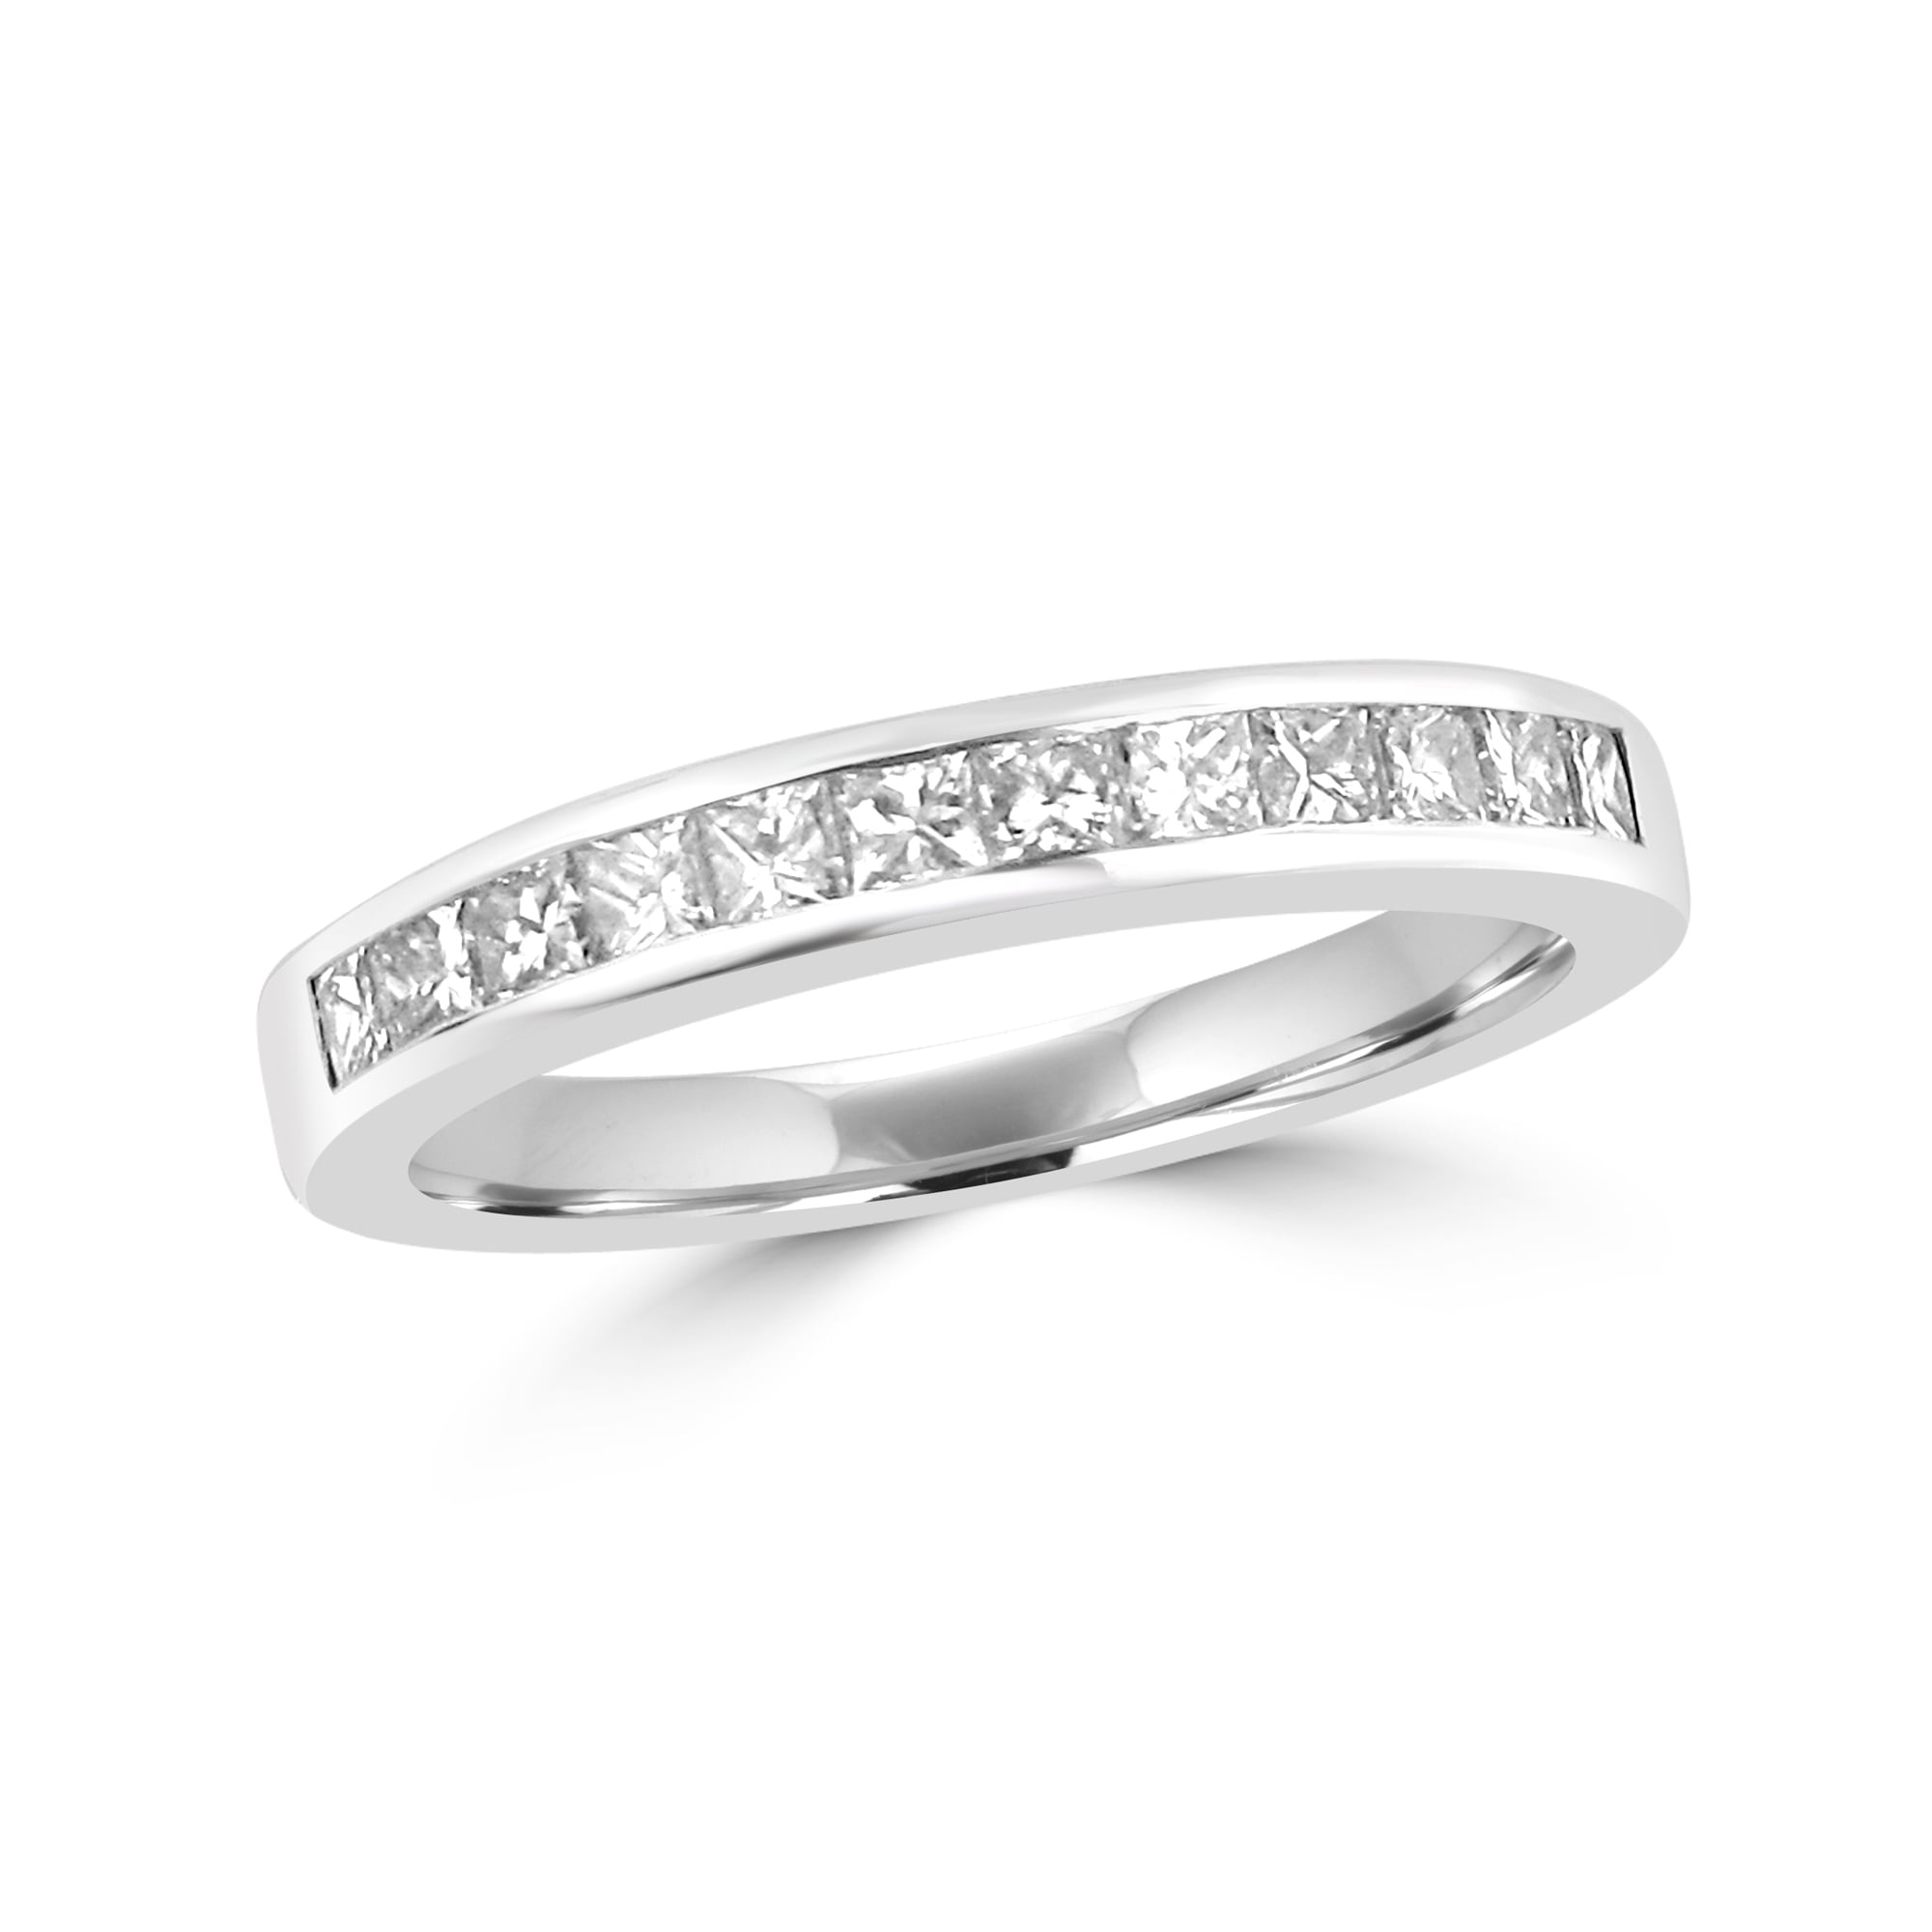 ring wedding bands product canadian rings band engagement platinum diamond fire glacier